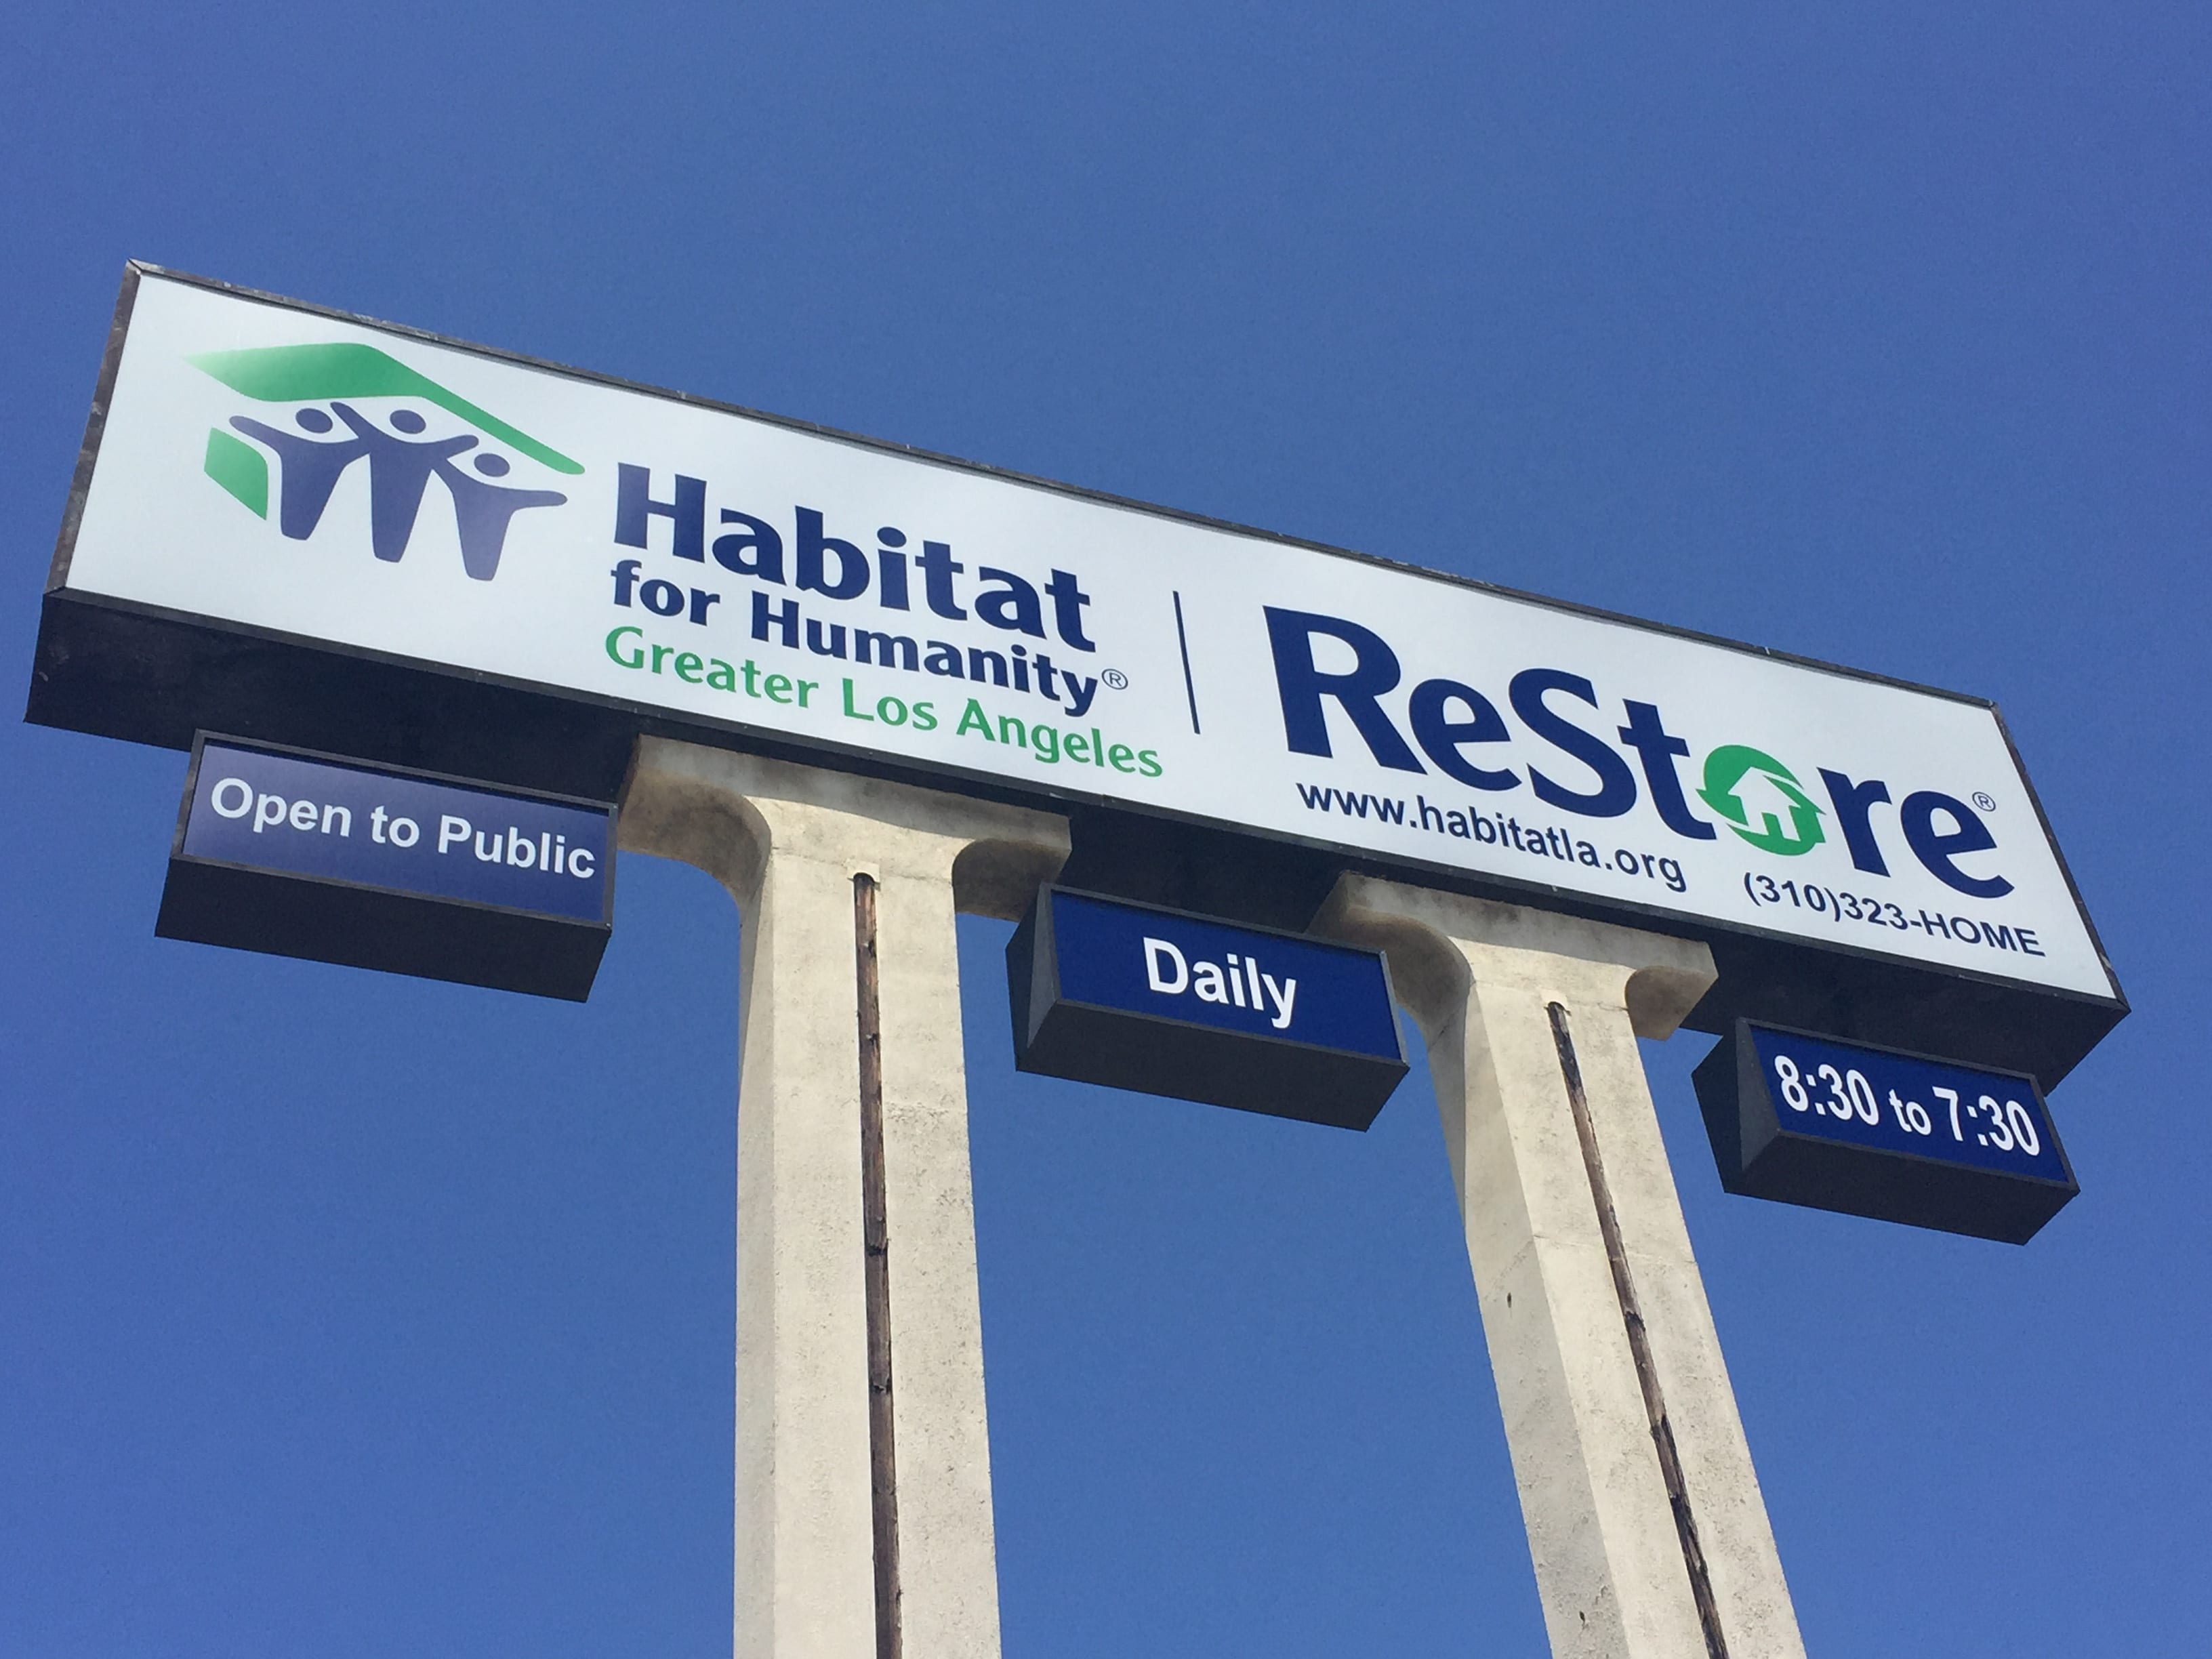 habitat-for-humanity-greater-los-angeles-restore